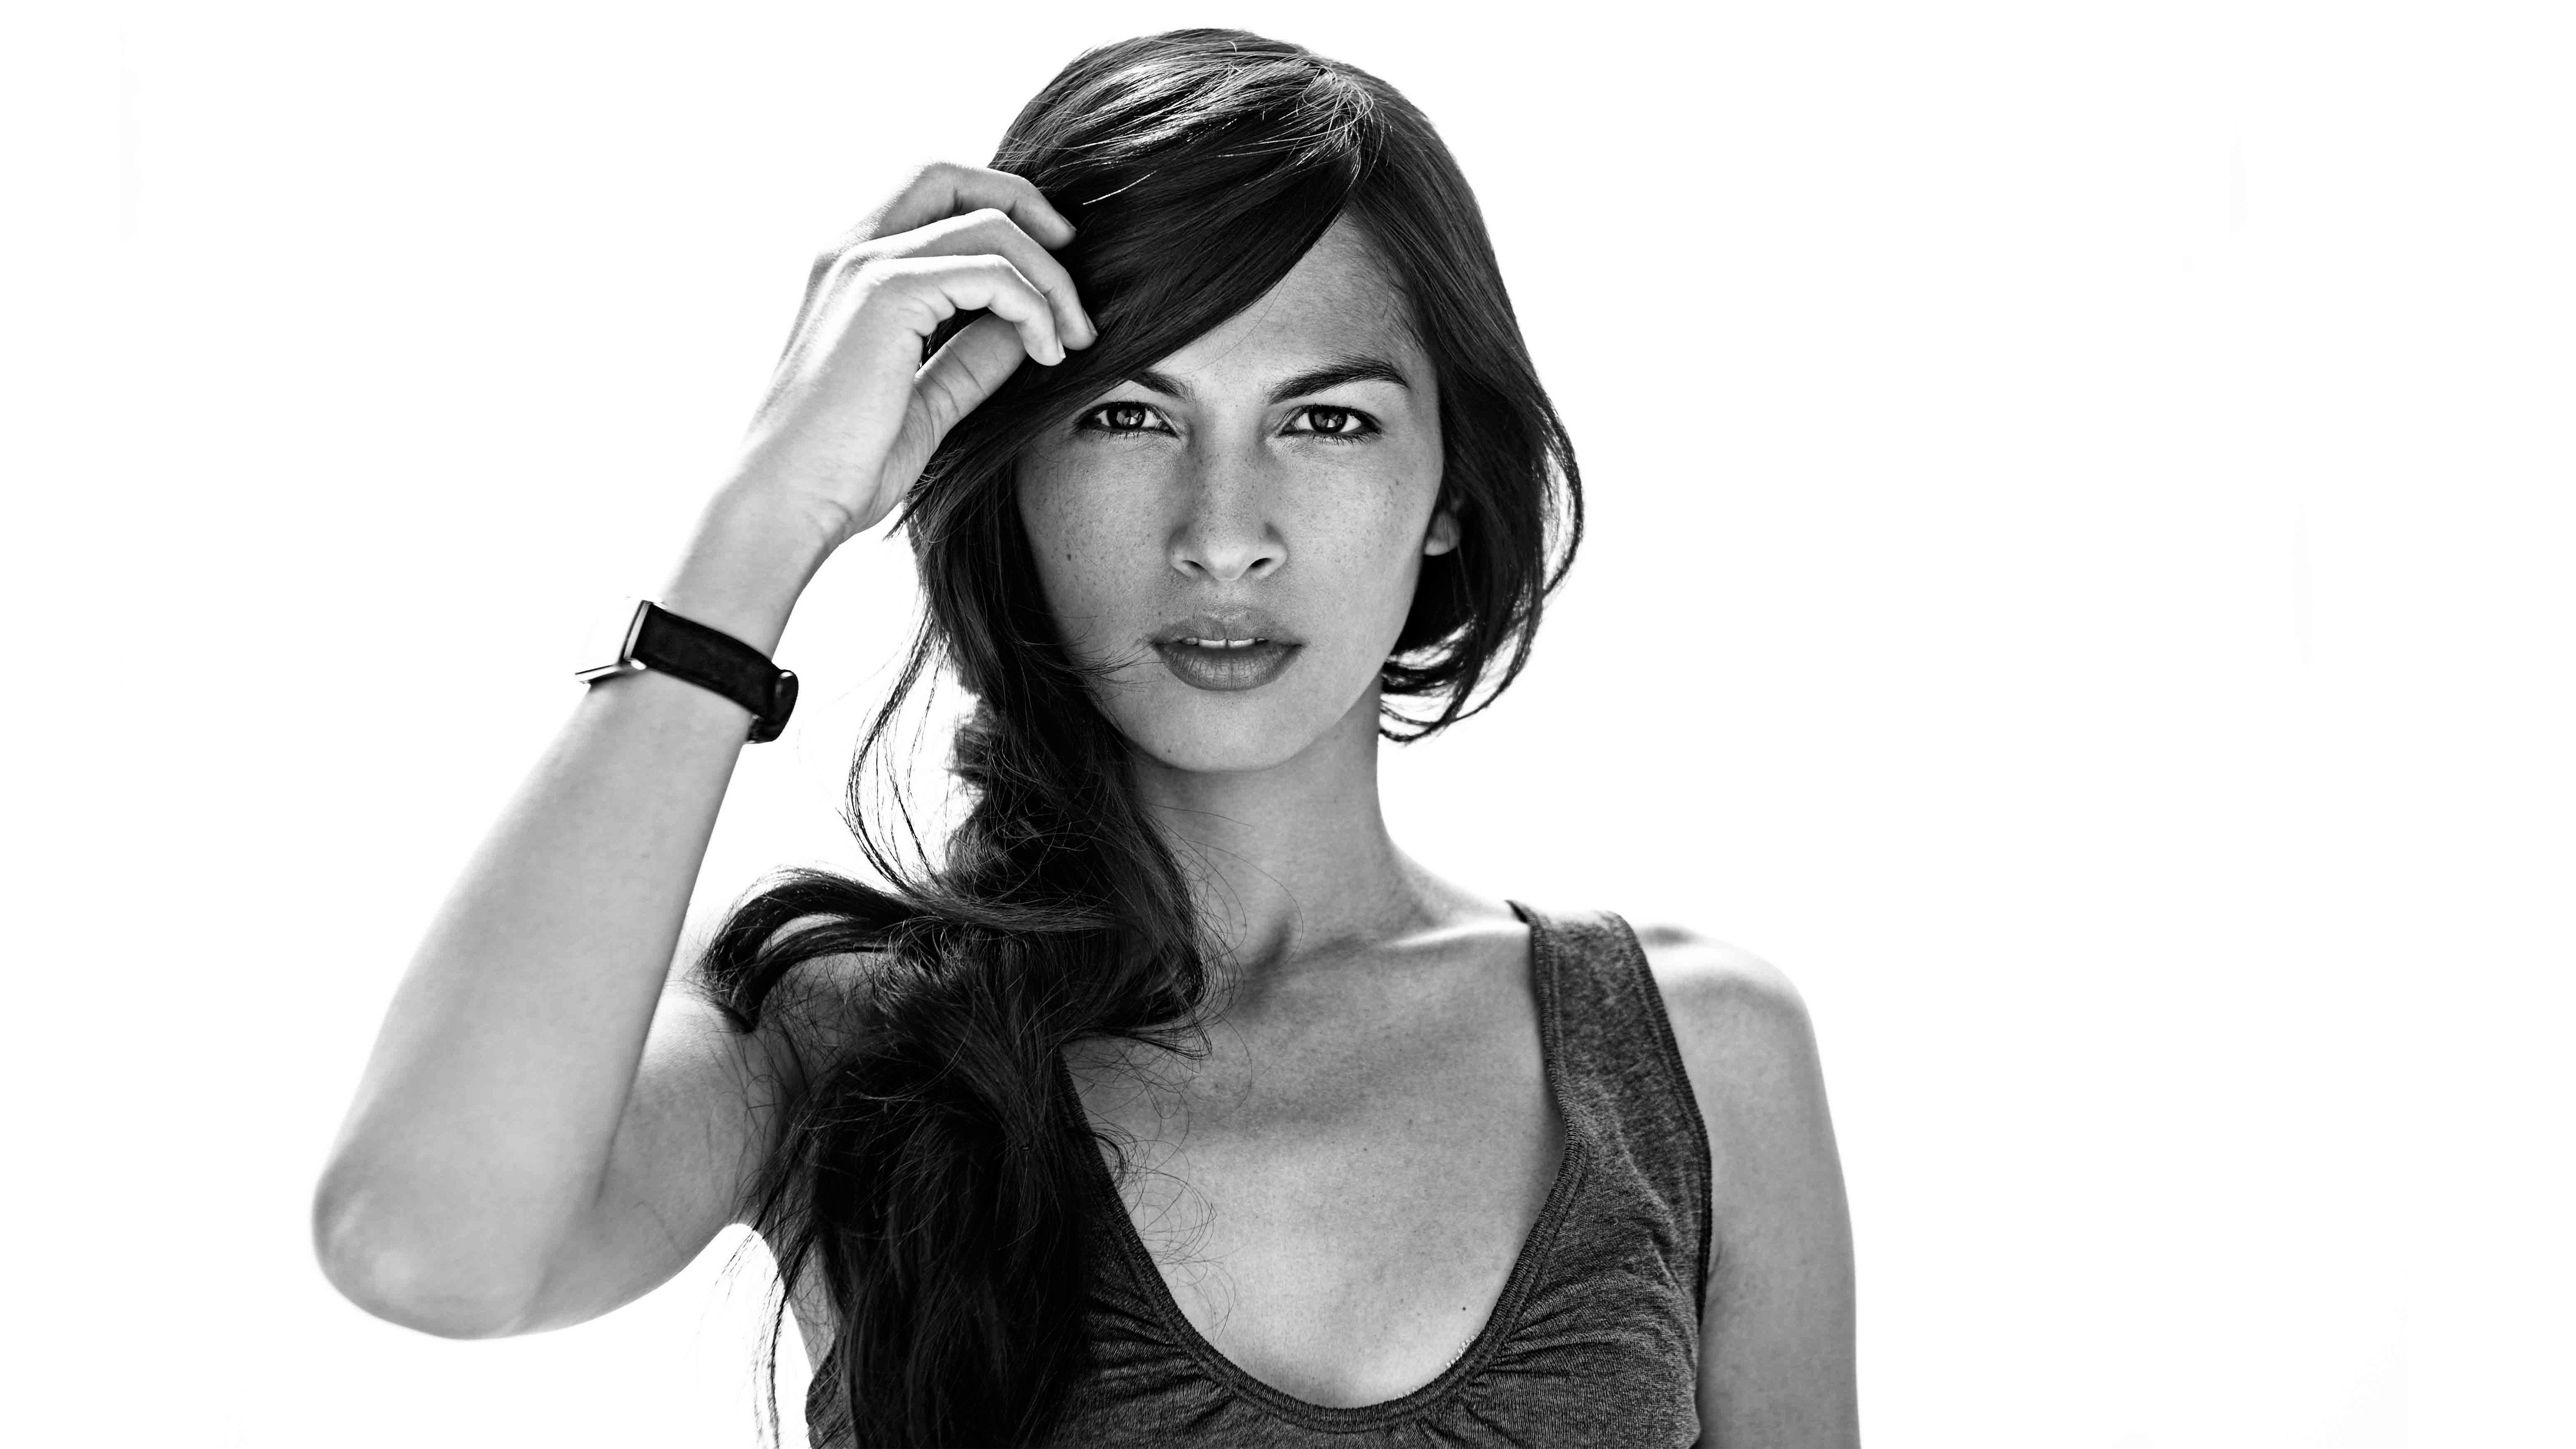 HQ Elodie Yung Wallpapers | File 990.77Kb